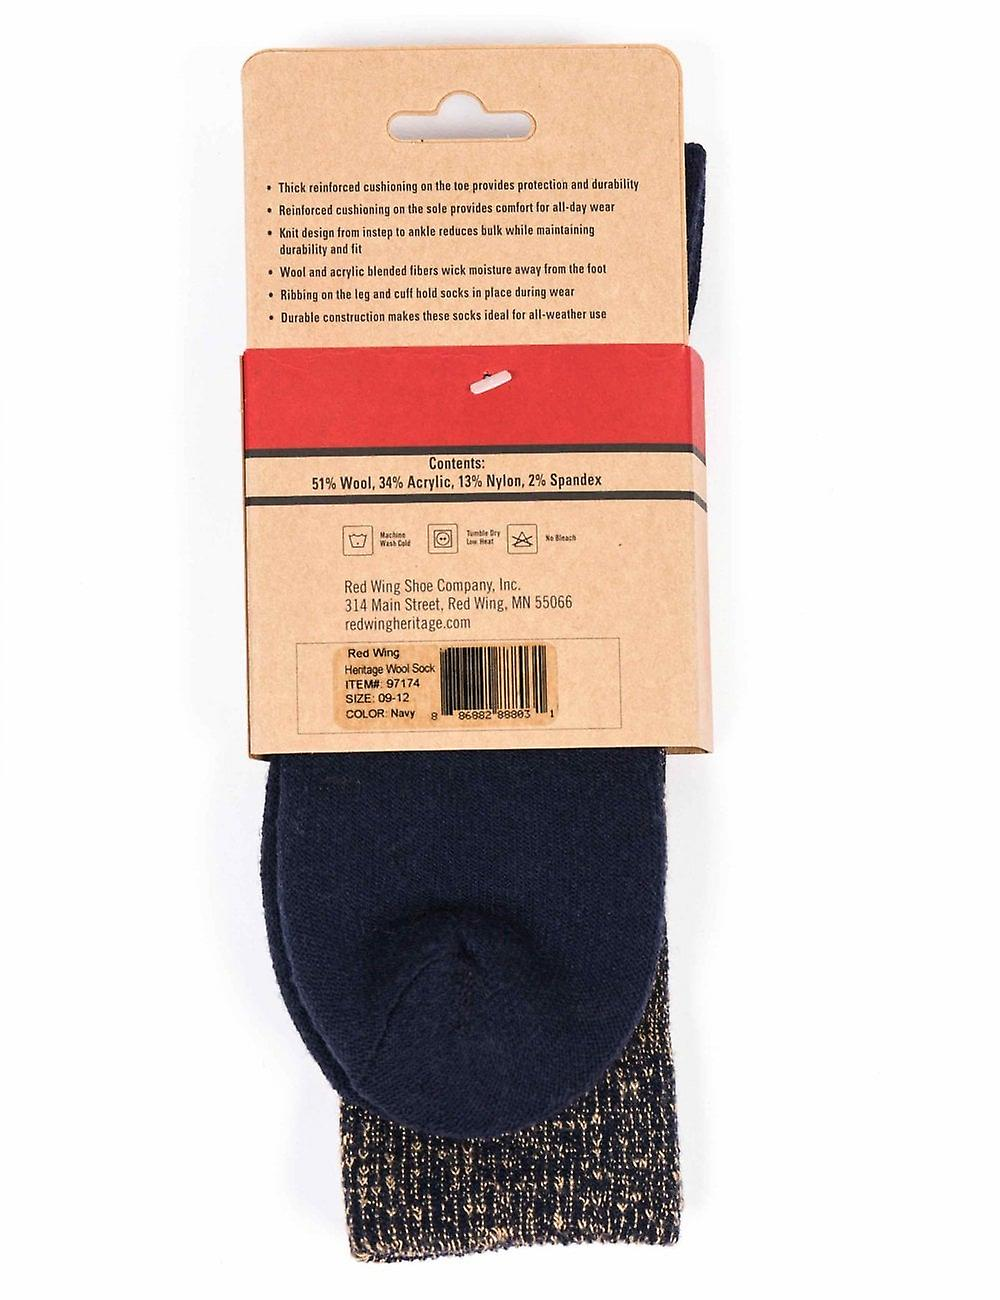 Red Wing 97174 Deep Toe Capped Wool Sock - Navy